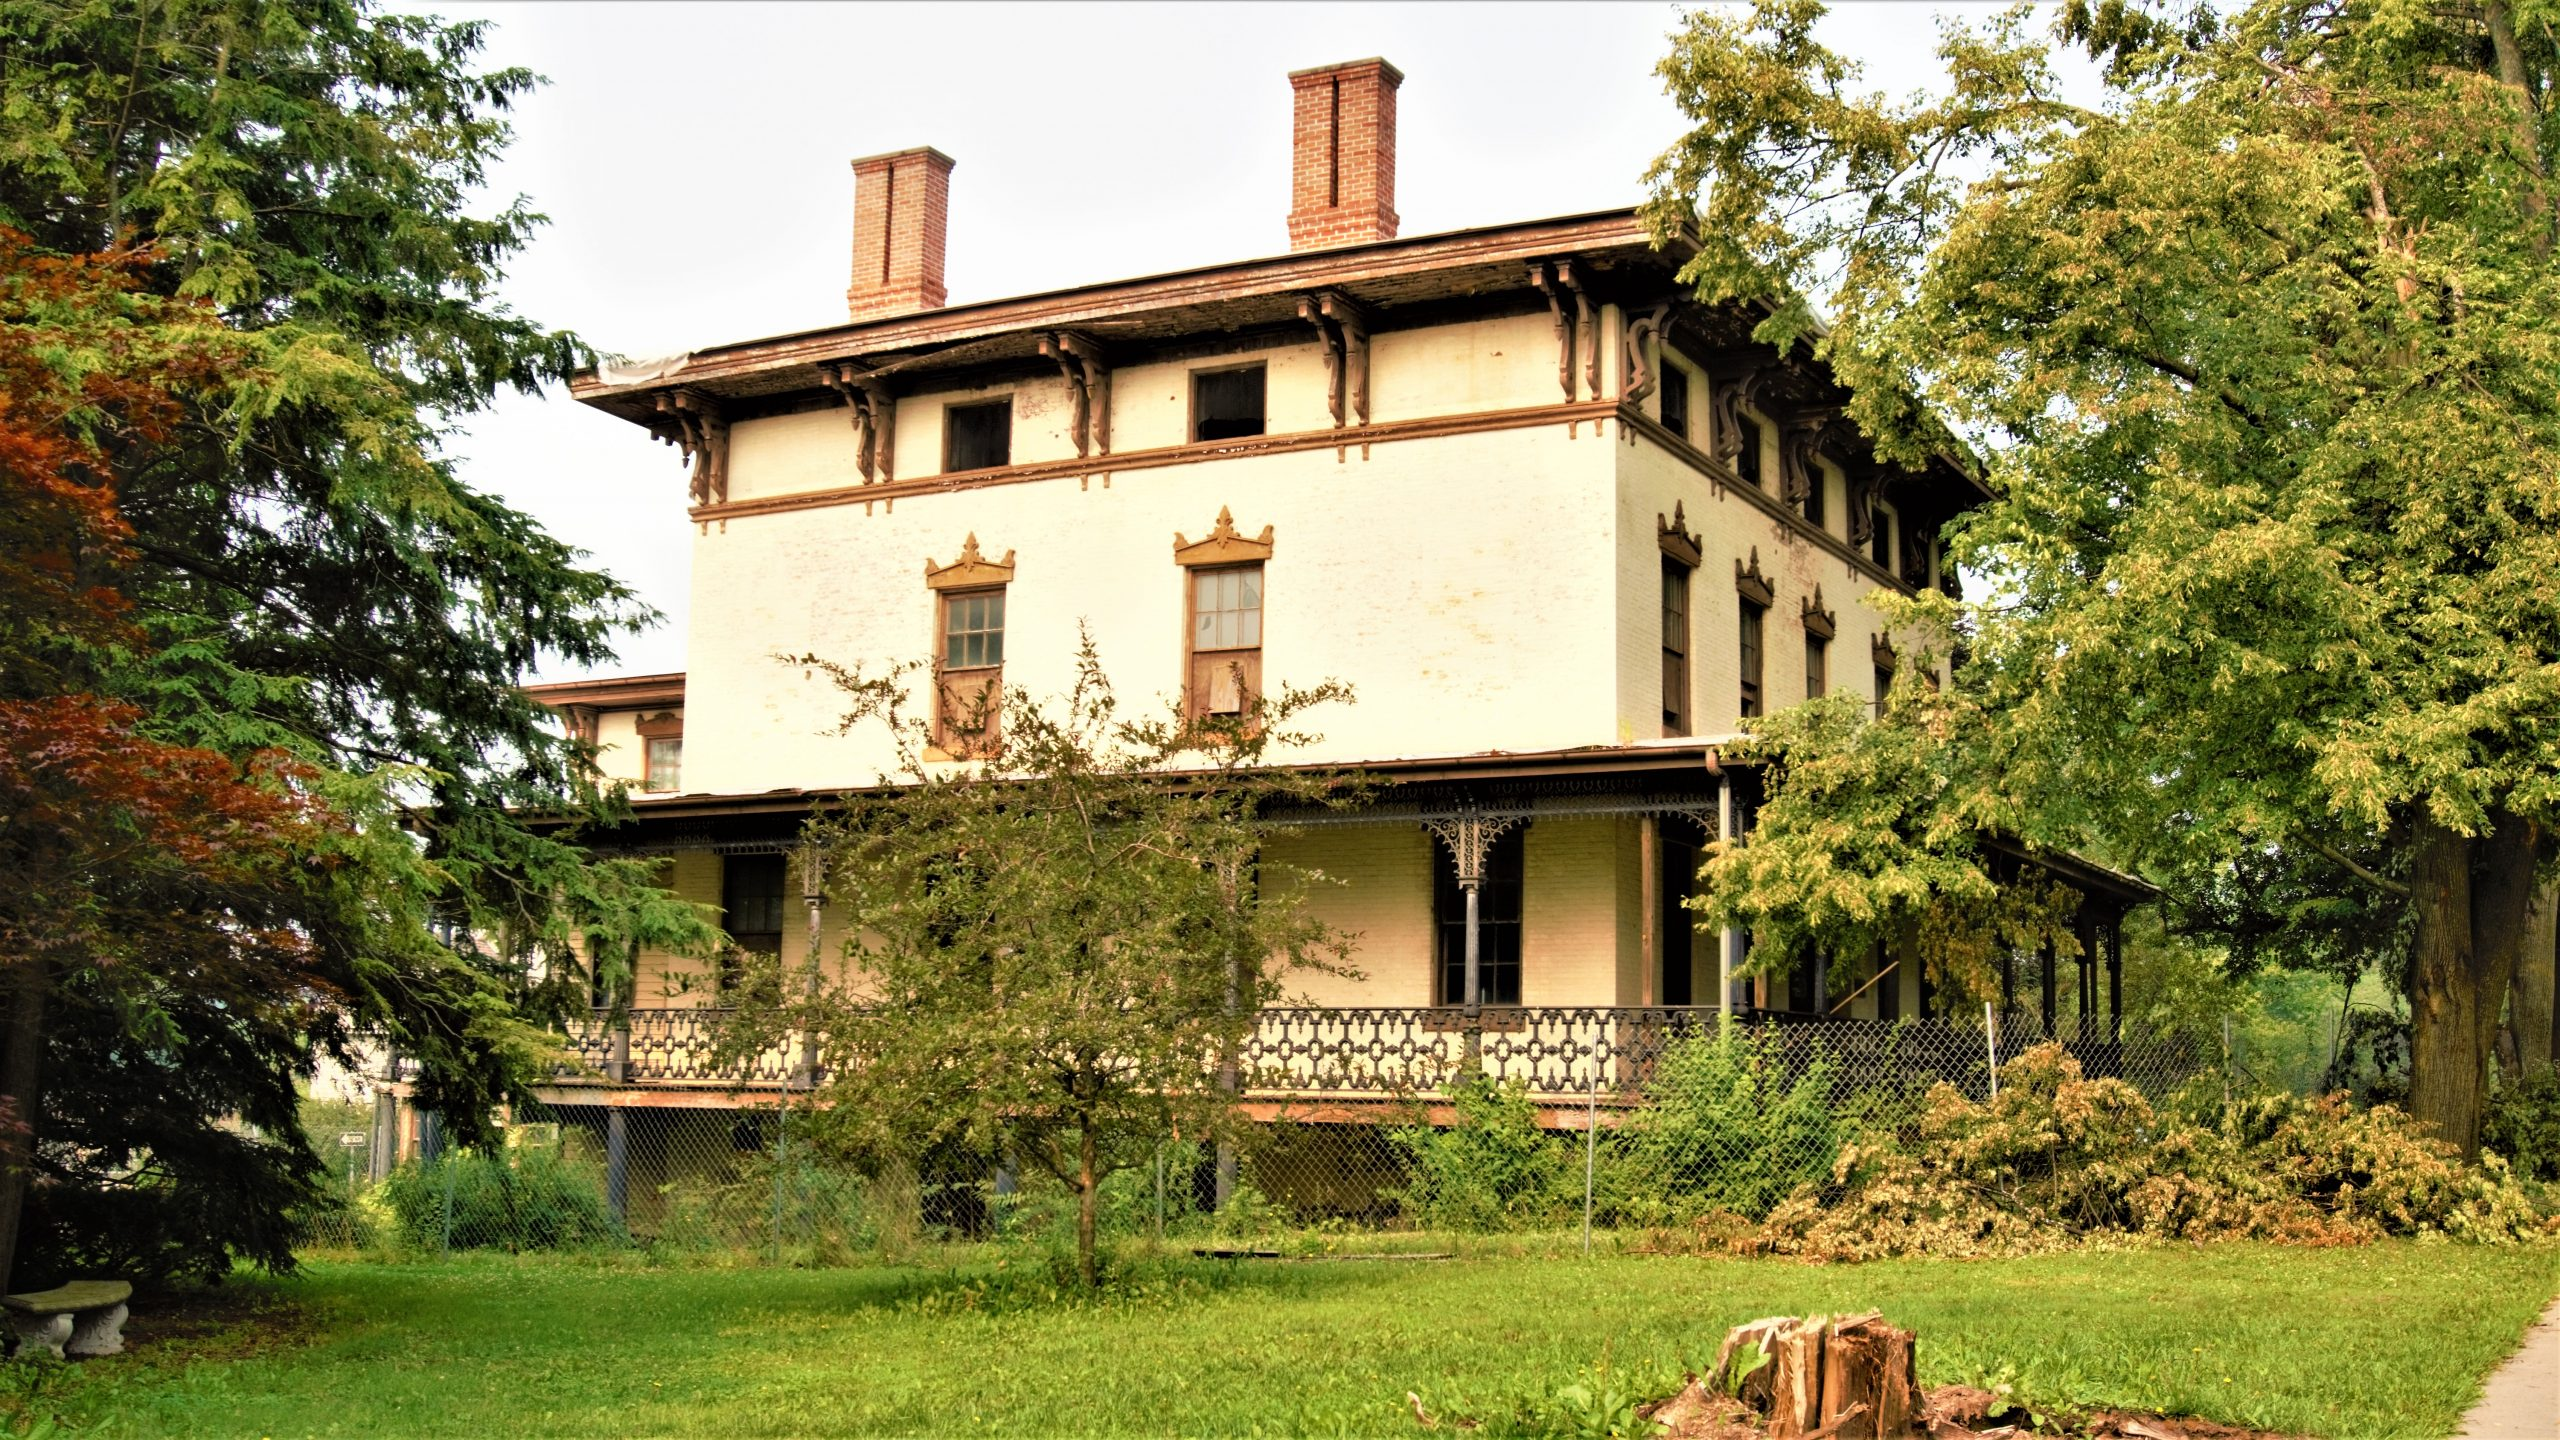 Friends of Parrott Hall works diligently at bringing the building back to its former glory